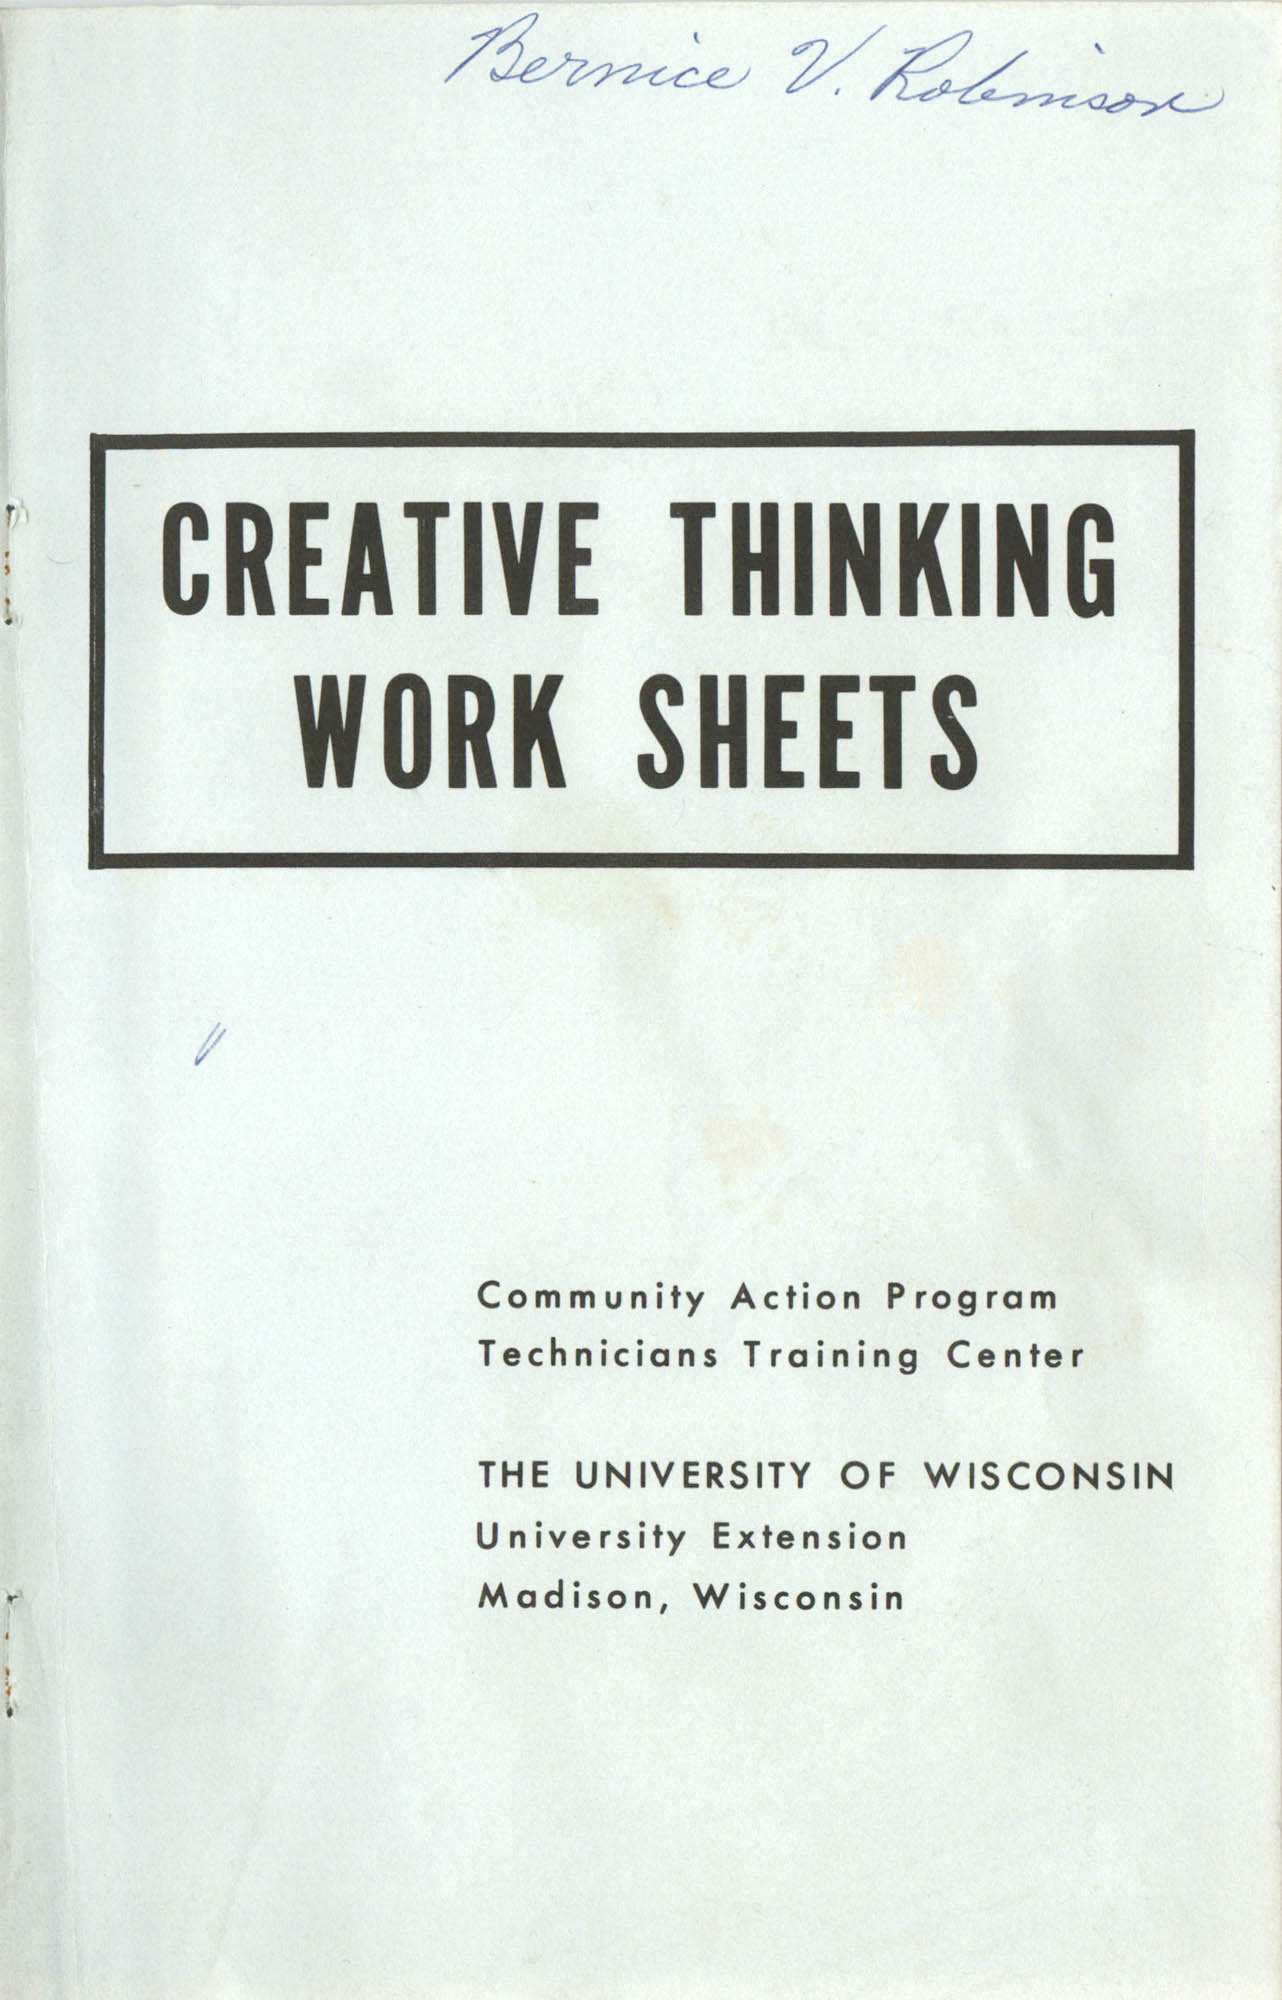 Creative Thinking Work Sheets, Front Cover